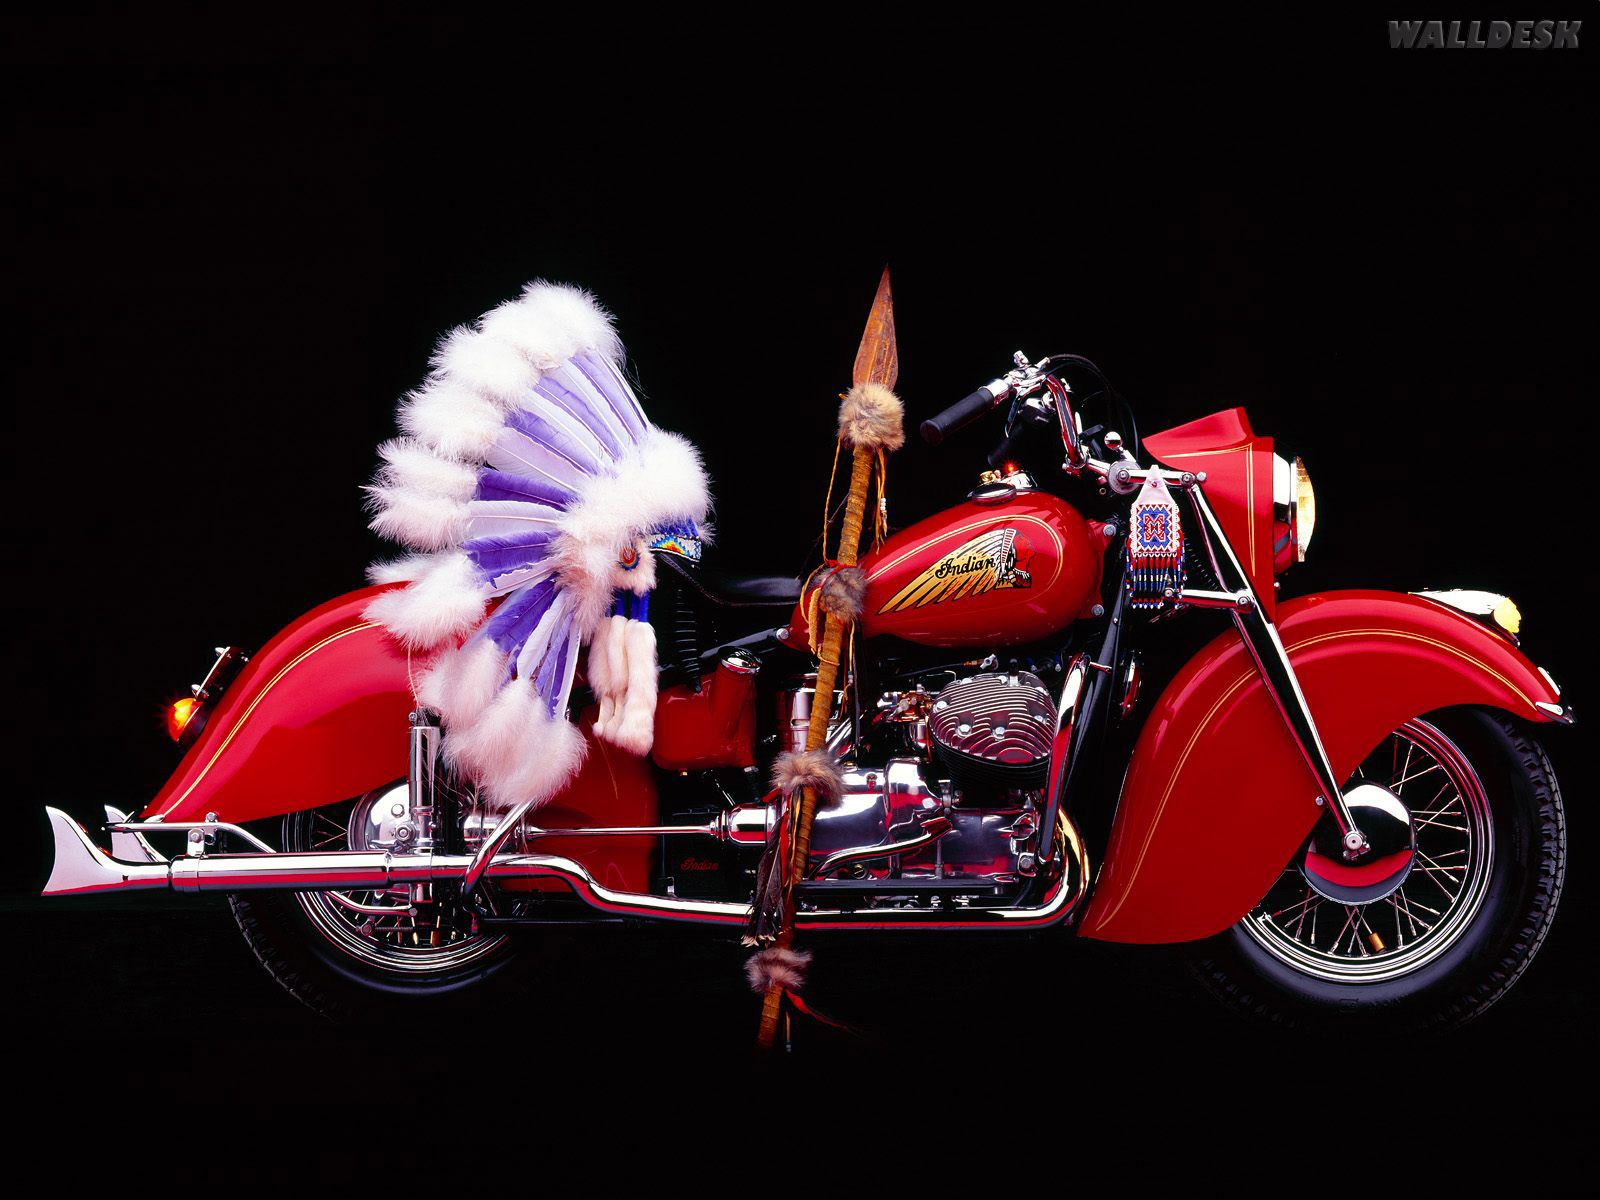 motorcycle wallpaper Indian Motorcycle Wallpaper 1600x1200